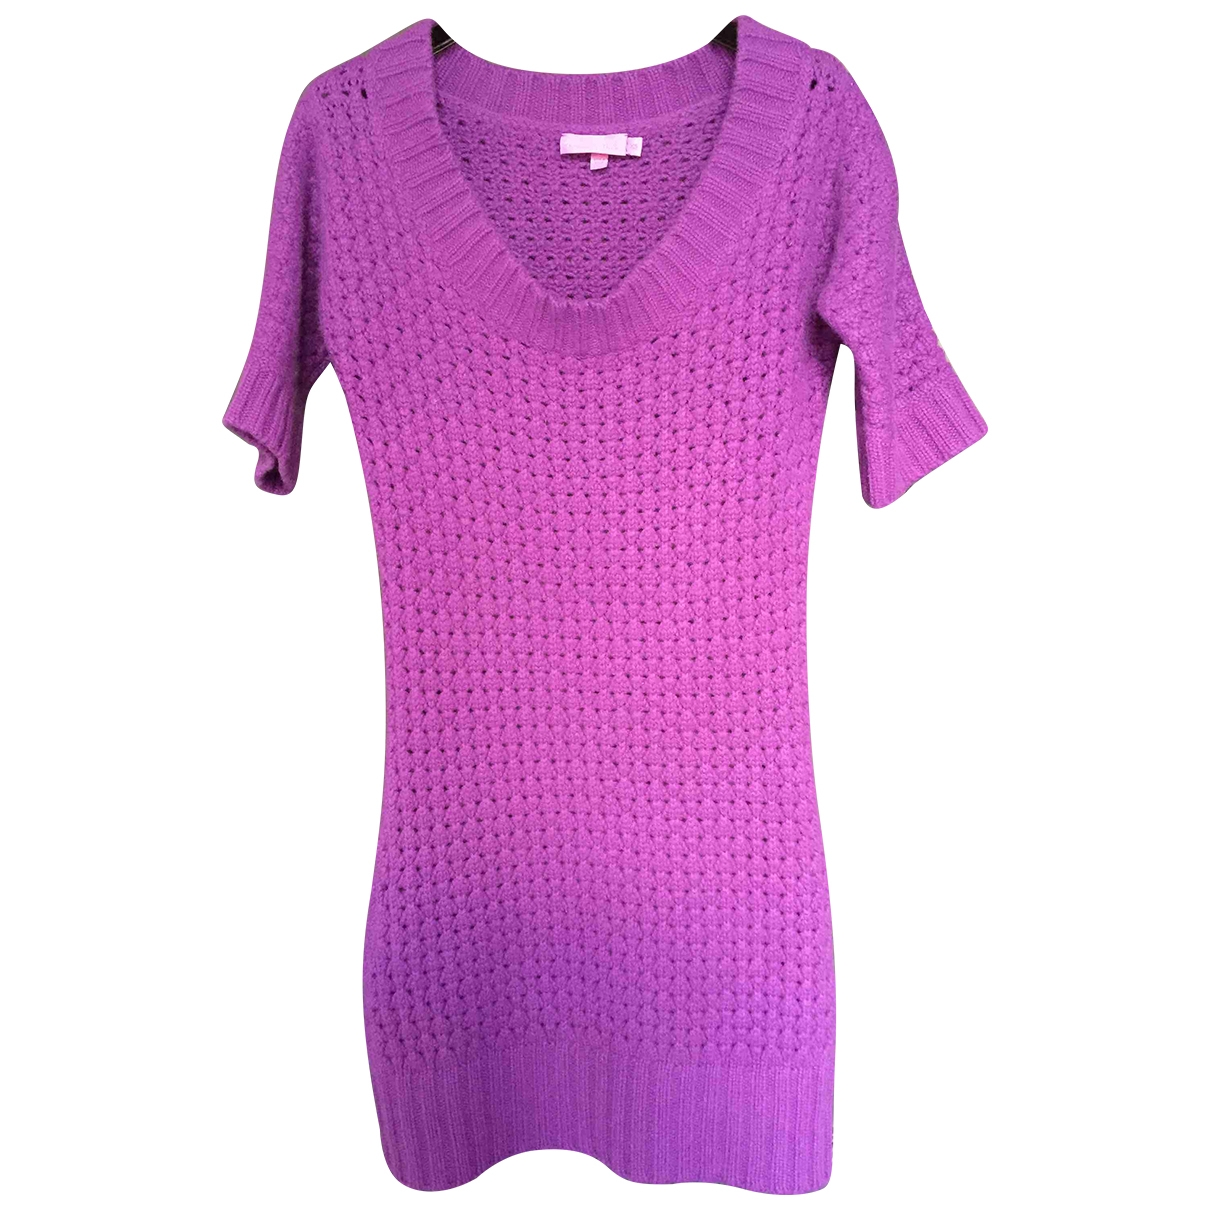 Christiane Celle \N Purple Cashmere dress for Women XS International